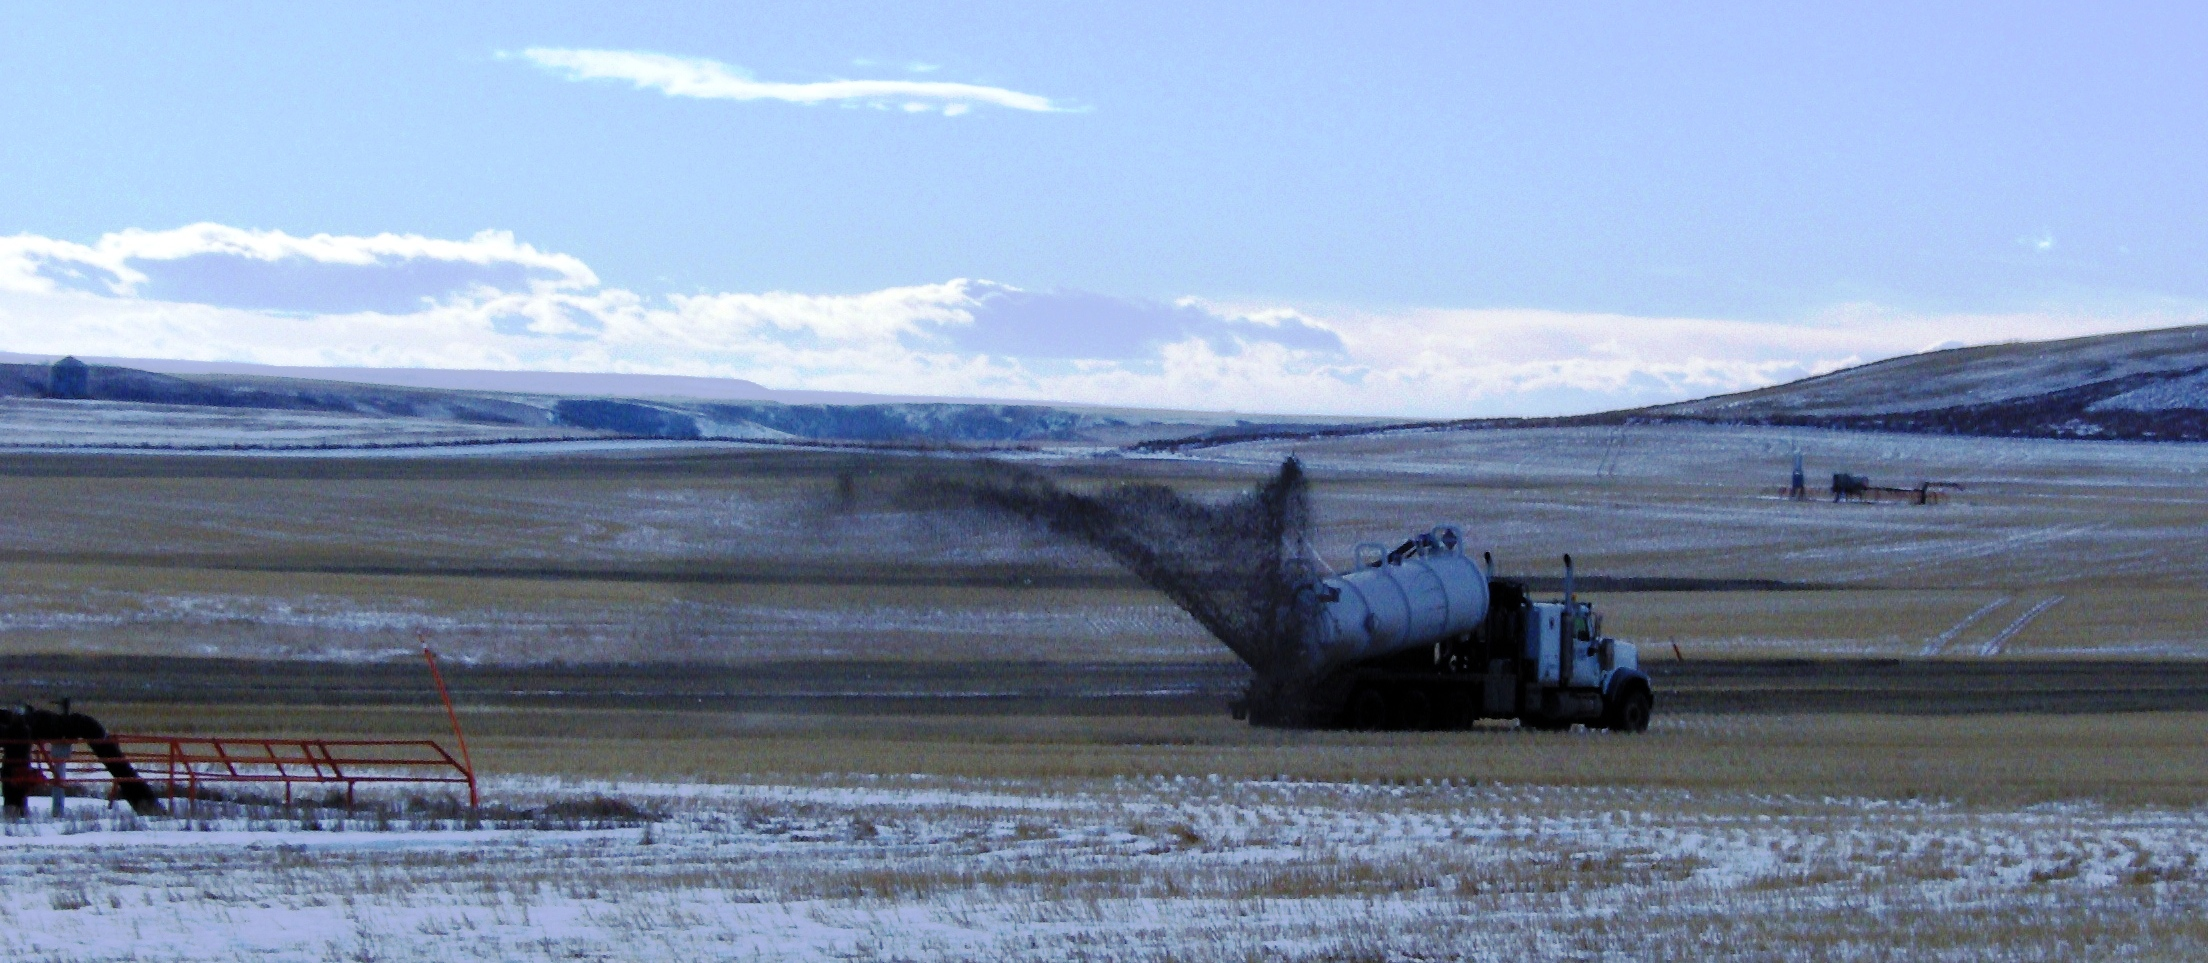 EnCana waste dumping from deviated drilling at 14-12-27-22 W4M near Hamlet of Rosebud November 2012